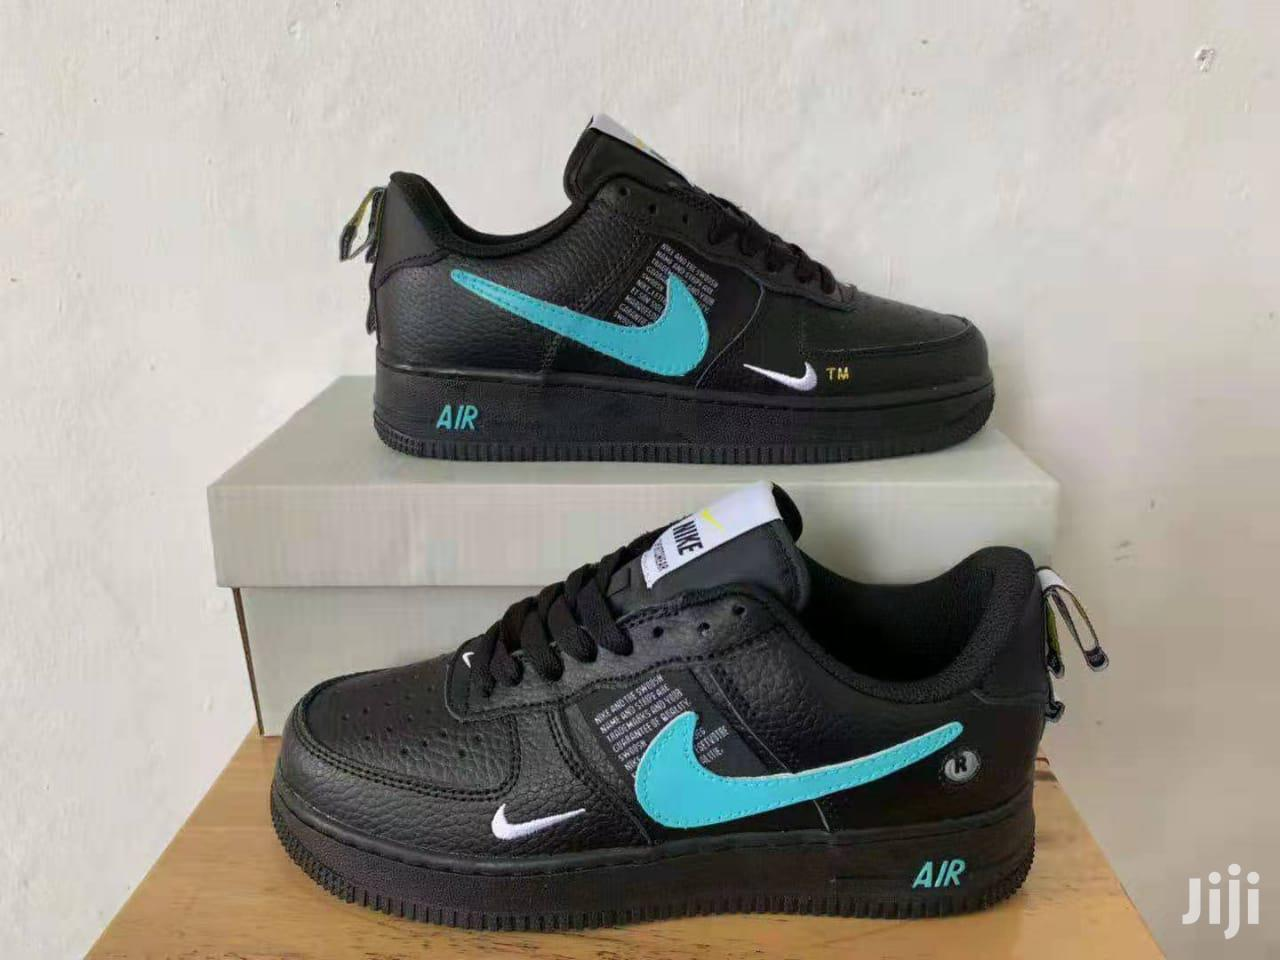 Unisex Nike Air Force TM Casual Sneakers | Shoes for sale in Nairobi Central, Nairobi, Kenya